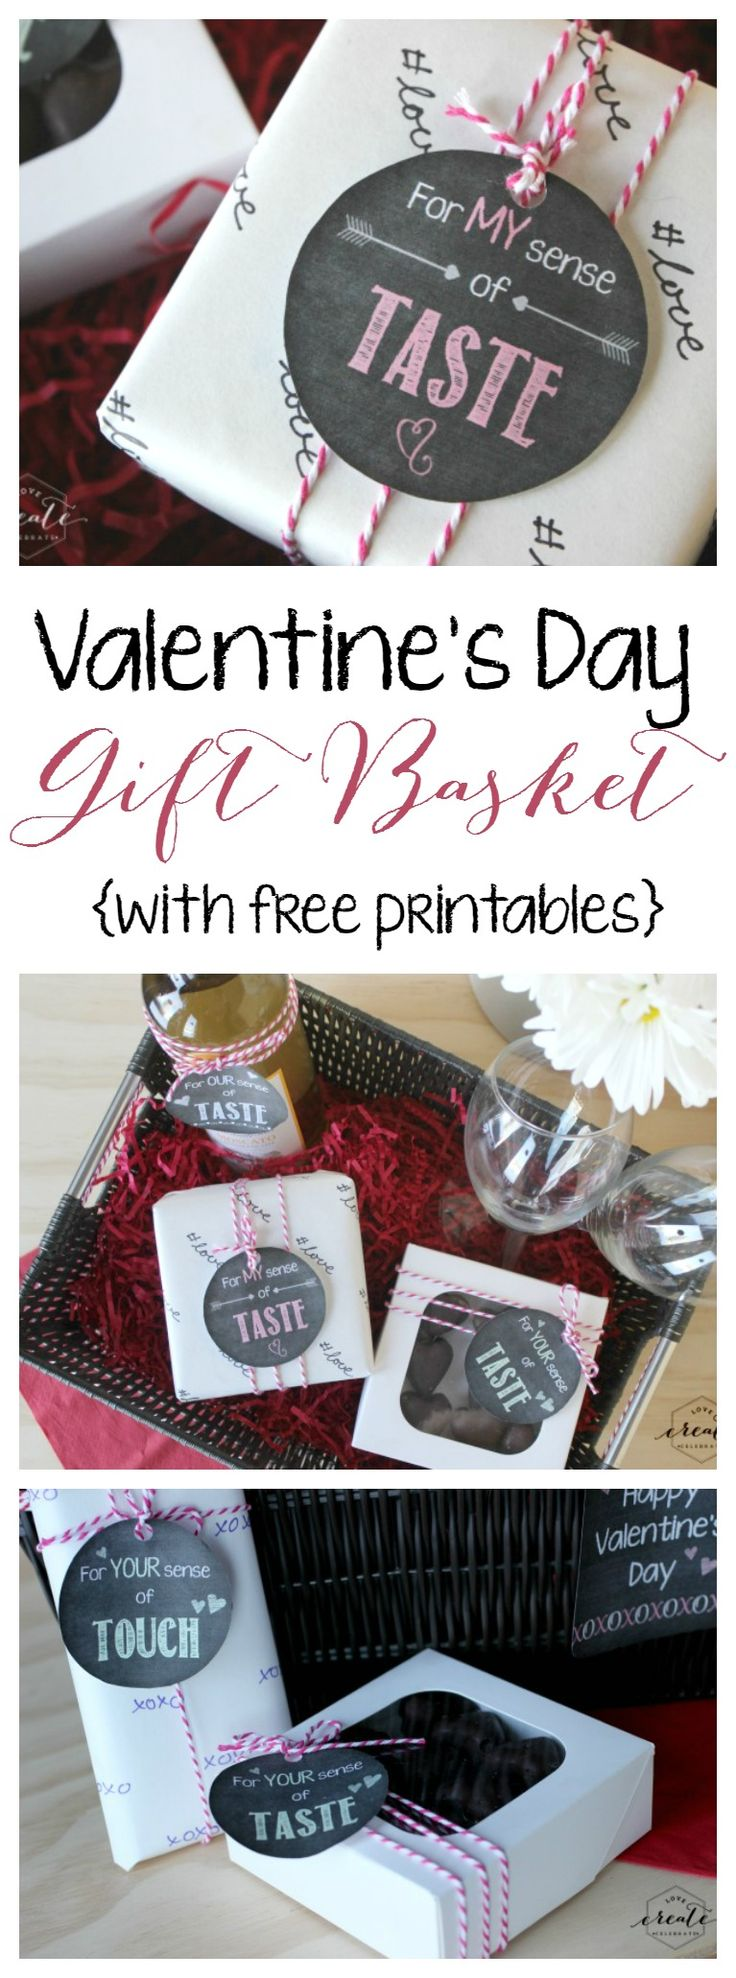 104 best Valentines images on Pinterest | Treats, Birthdays and Drink